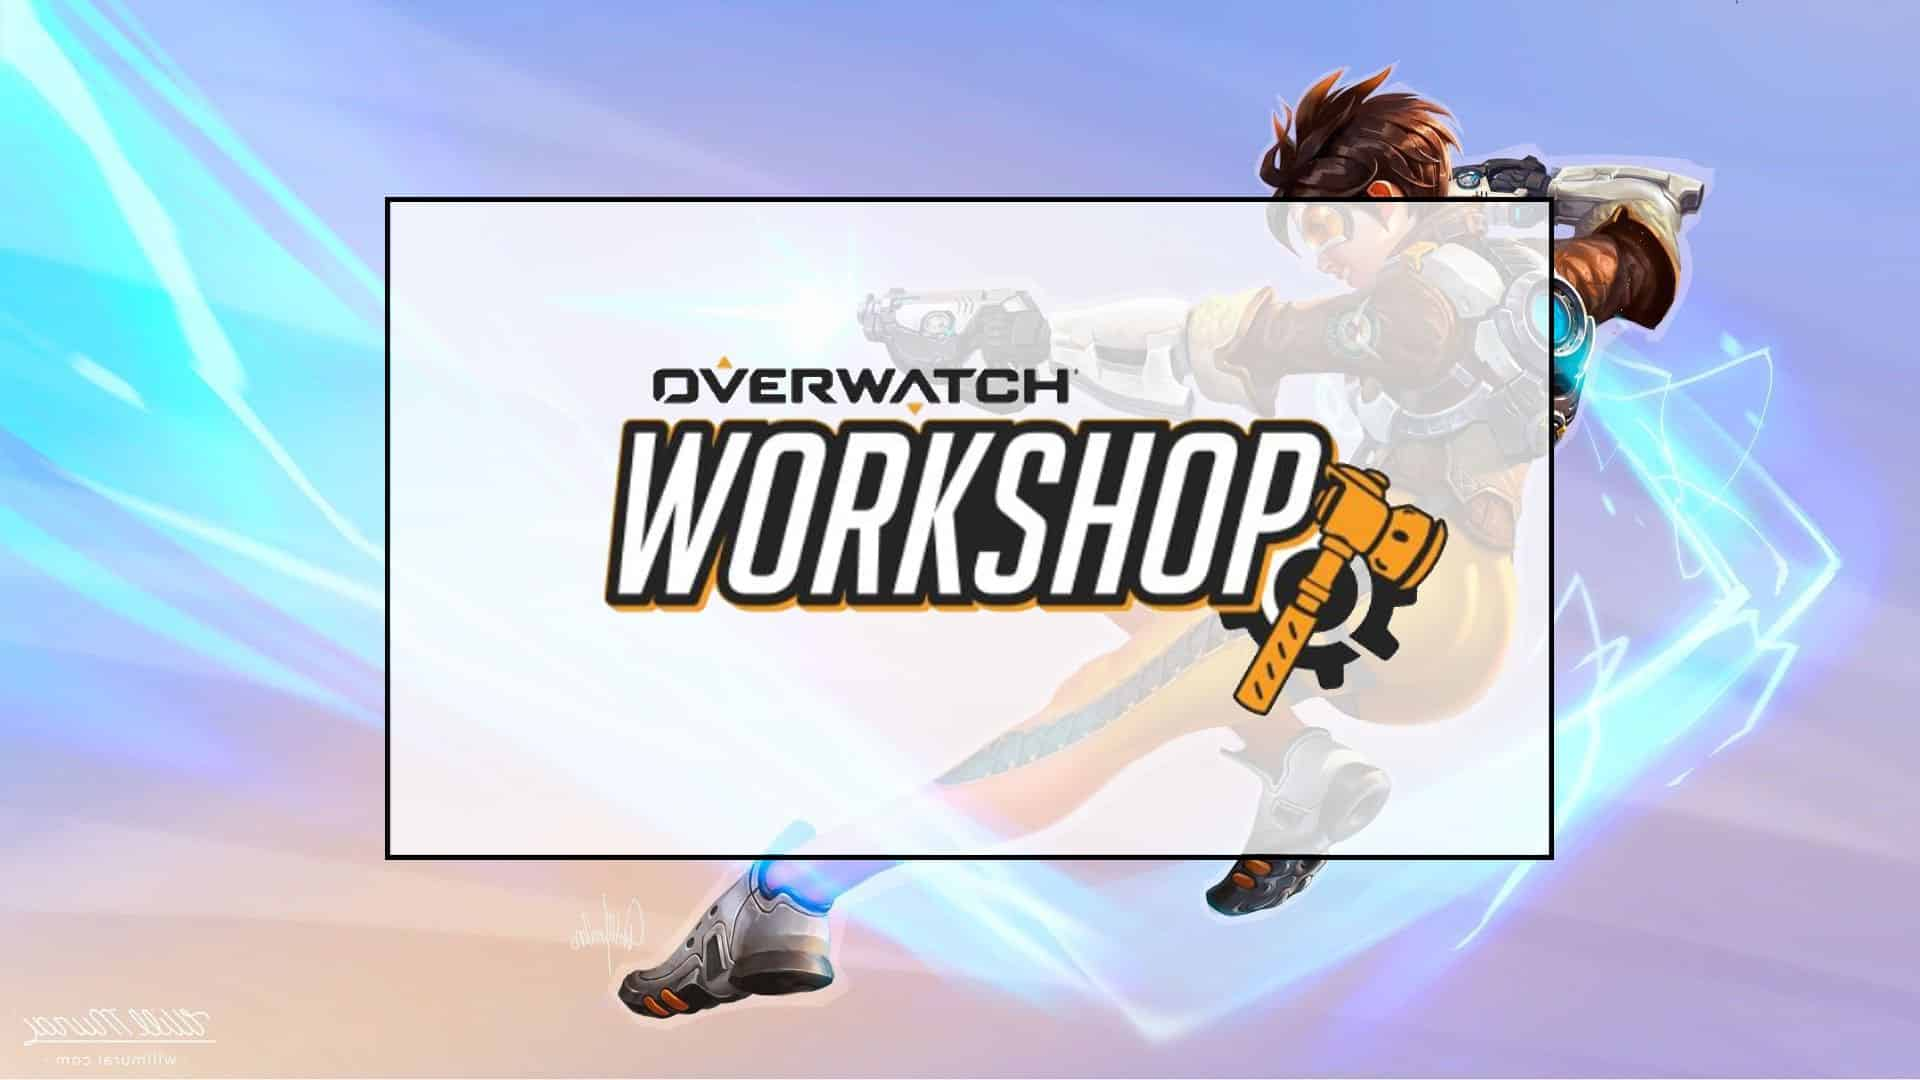 Everything You Need to Know About The Overwatch Workshop